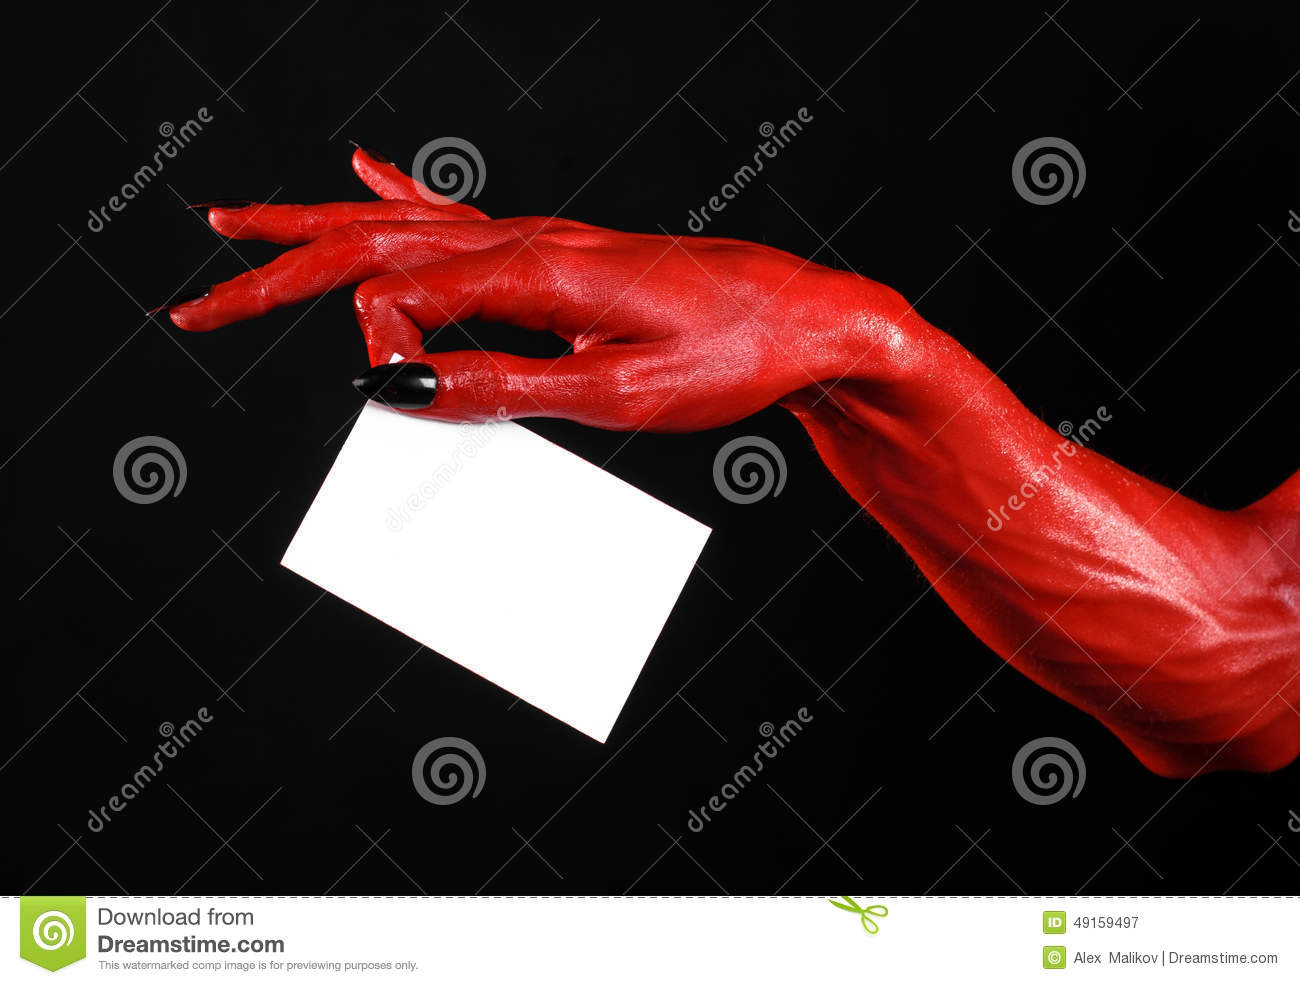 halloween theme red devil hand with black nails holding a blank